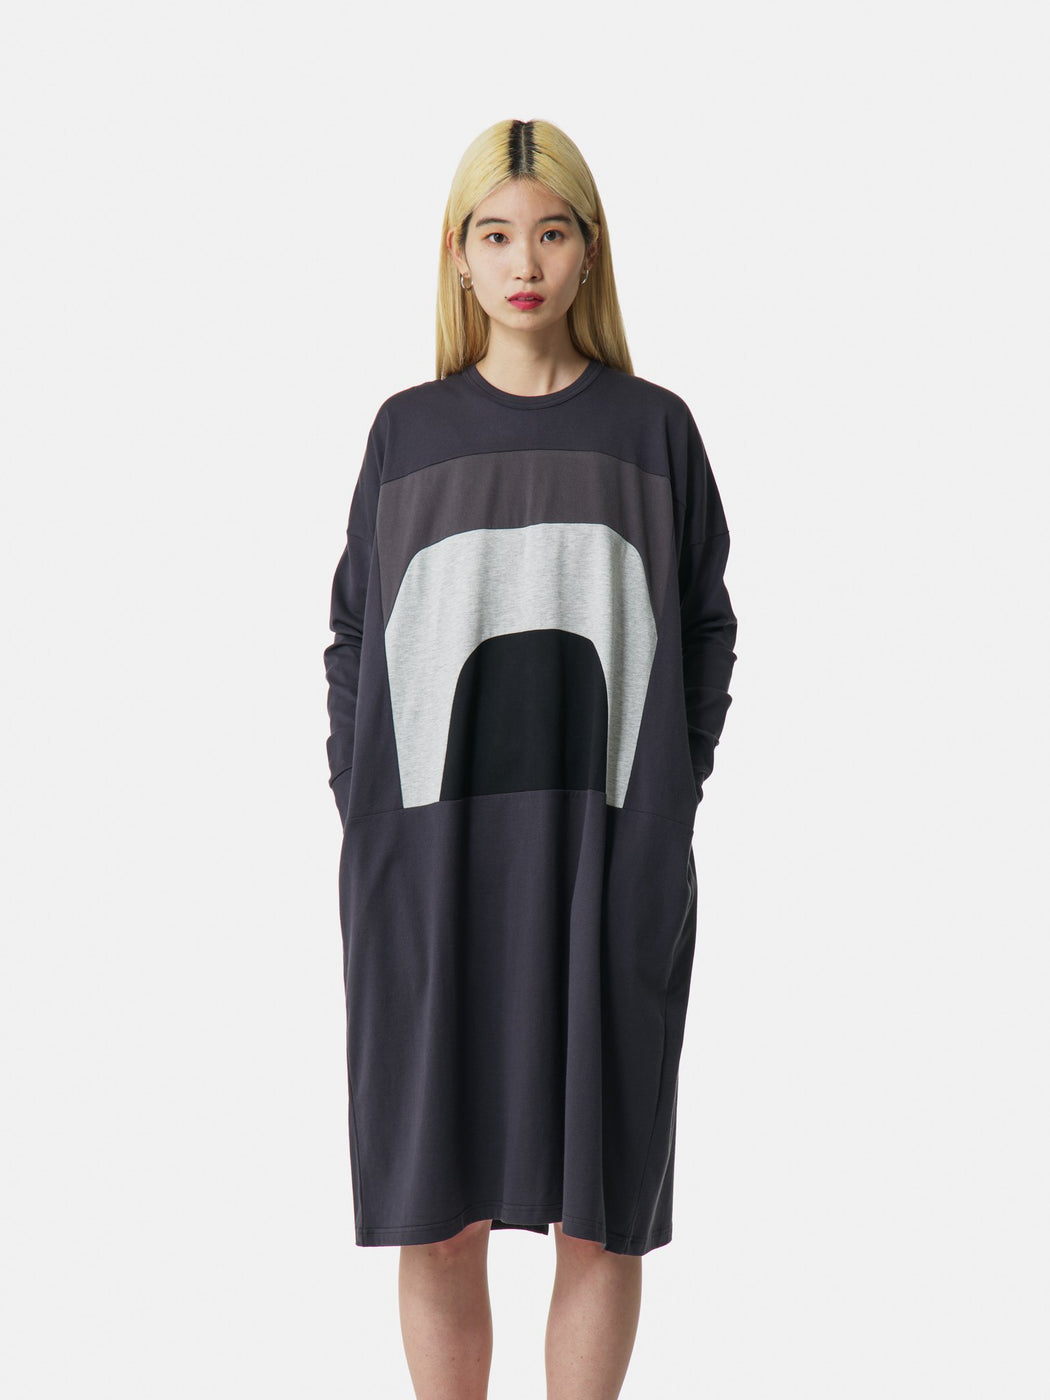 ALOYE Color Blocks Women's Long Sleeve T-shirt Dress Dark Gray